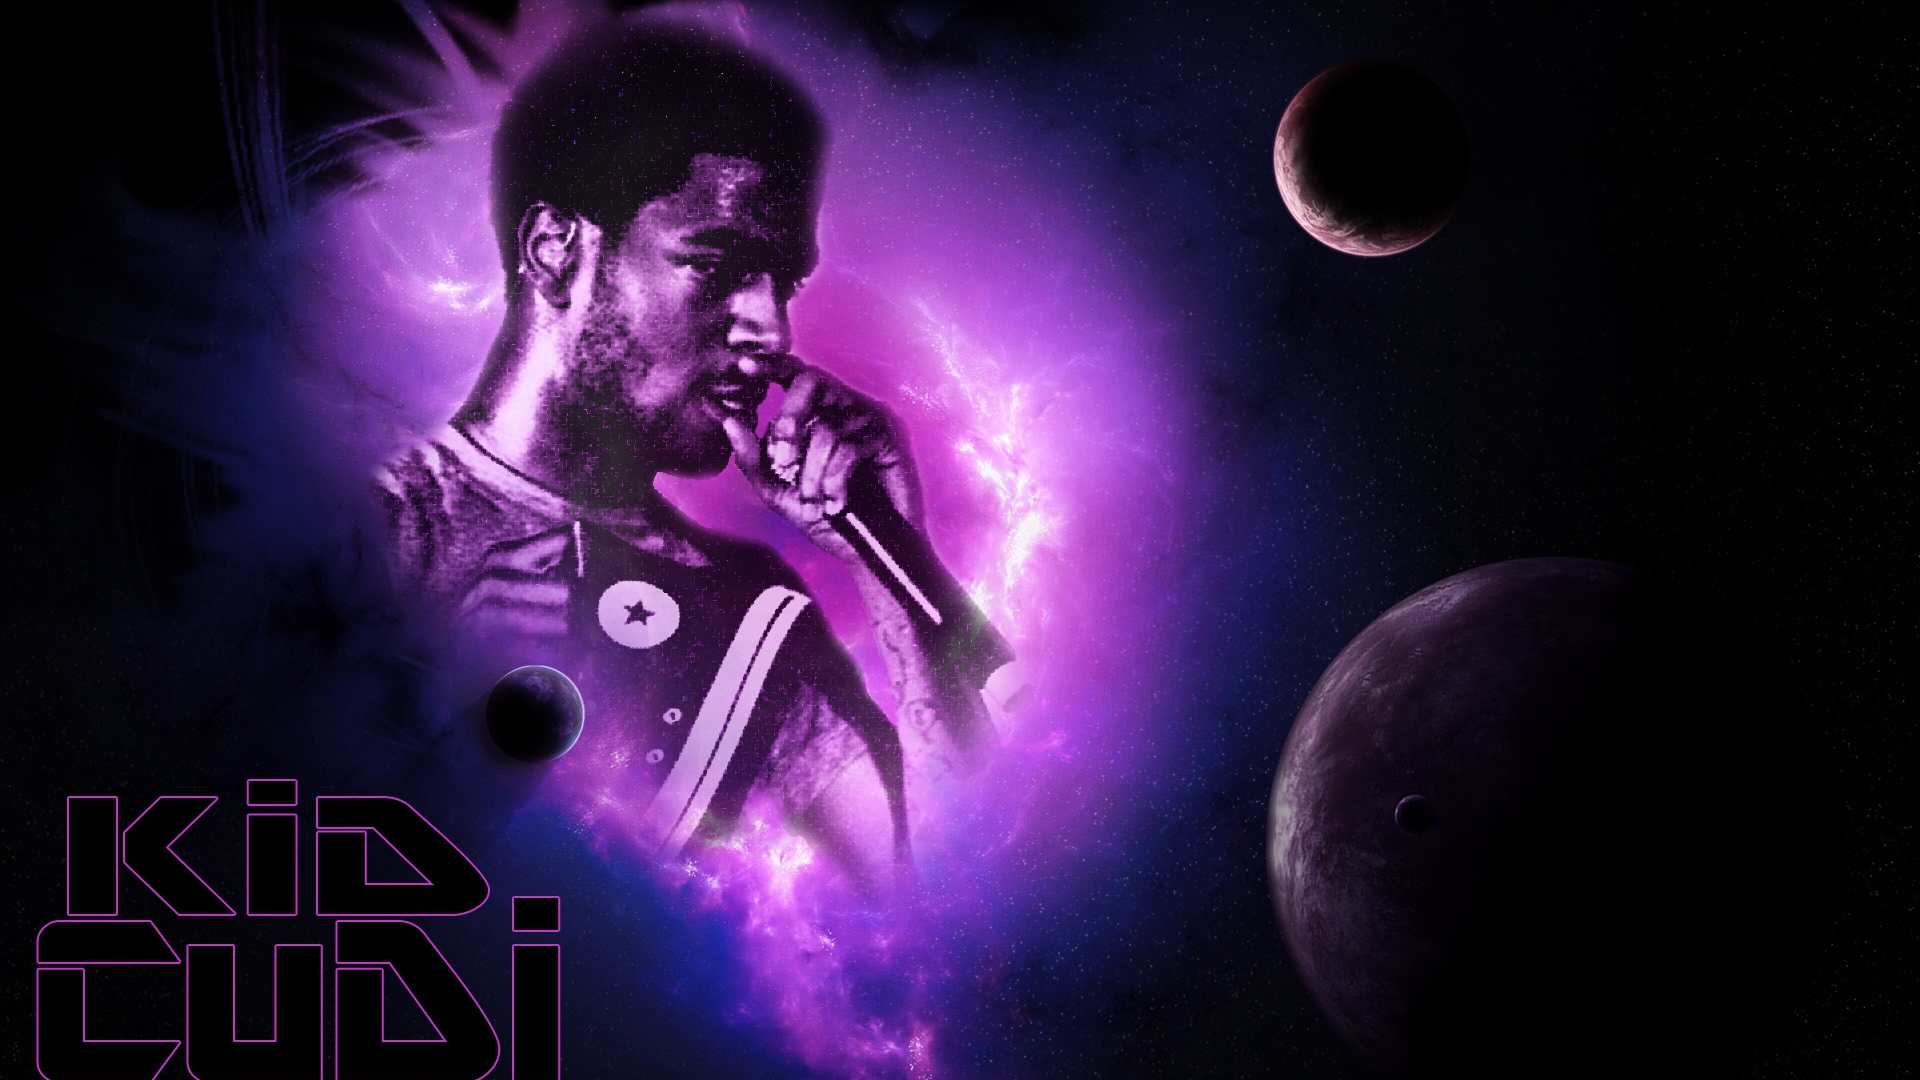 Download Wallpaper 1920x1080 Kid Cudi Man Of The Moon Microphone Album Cover Full Hd 1080p Hd Background